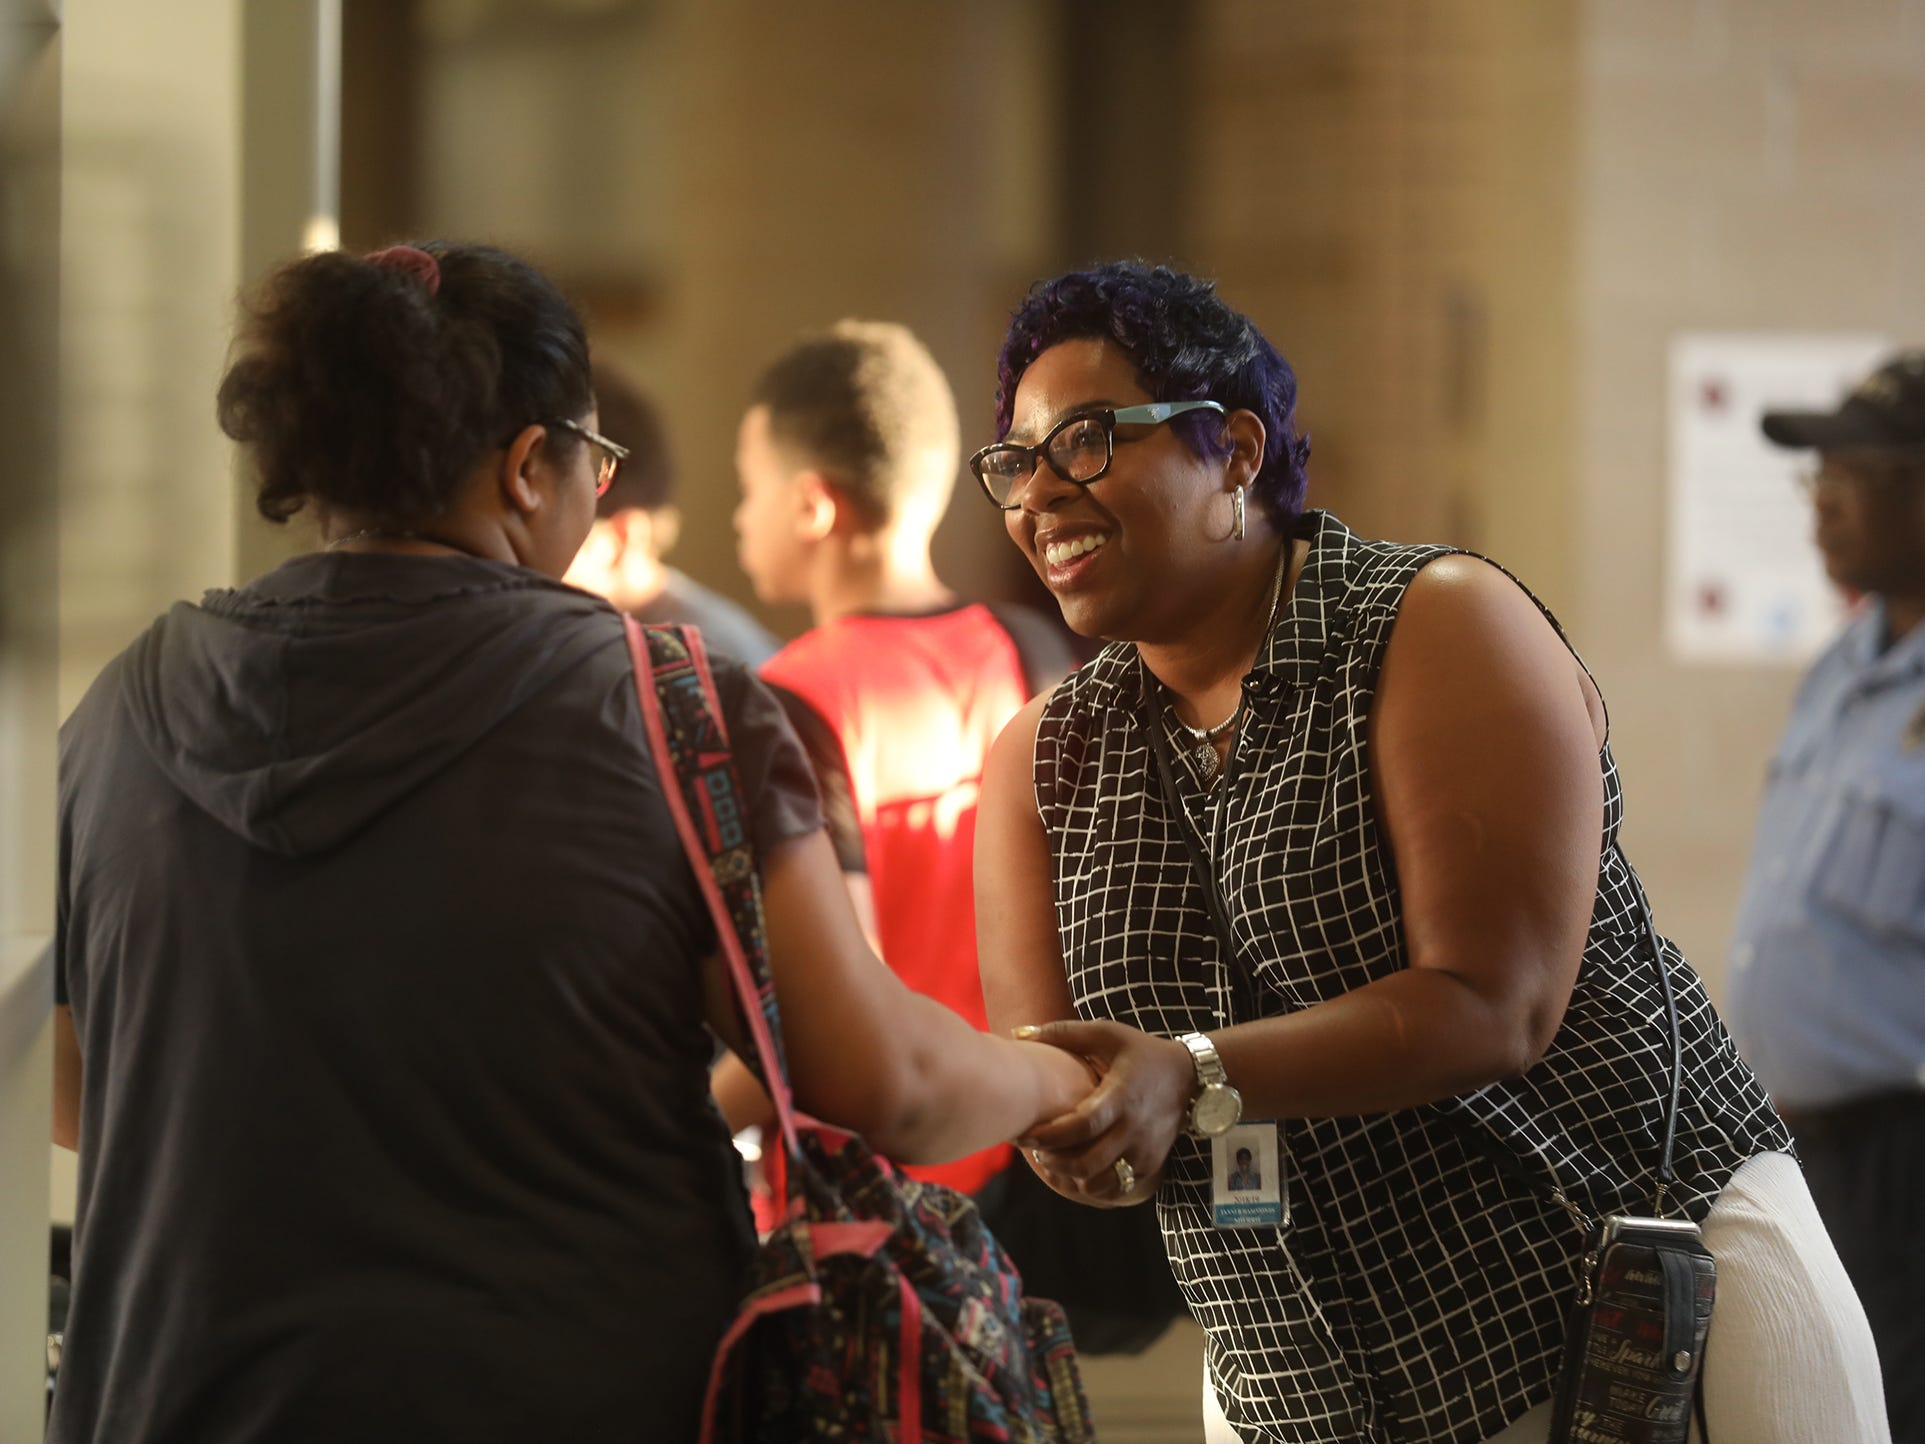 Sherrie Tanner Hammonds, a social worker new to Rochester Early College International High School, greets Yolanda Wooten, a ninth-grader.  Tanner Hammonds shook hands or high-fived students to welcome them to school.